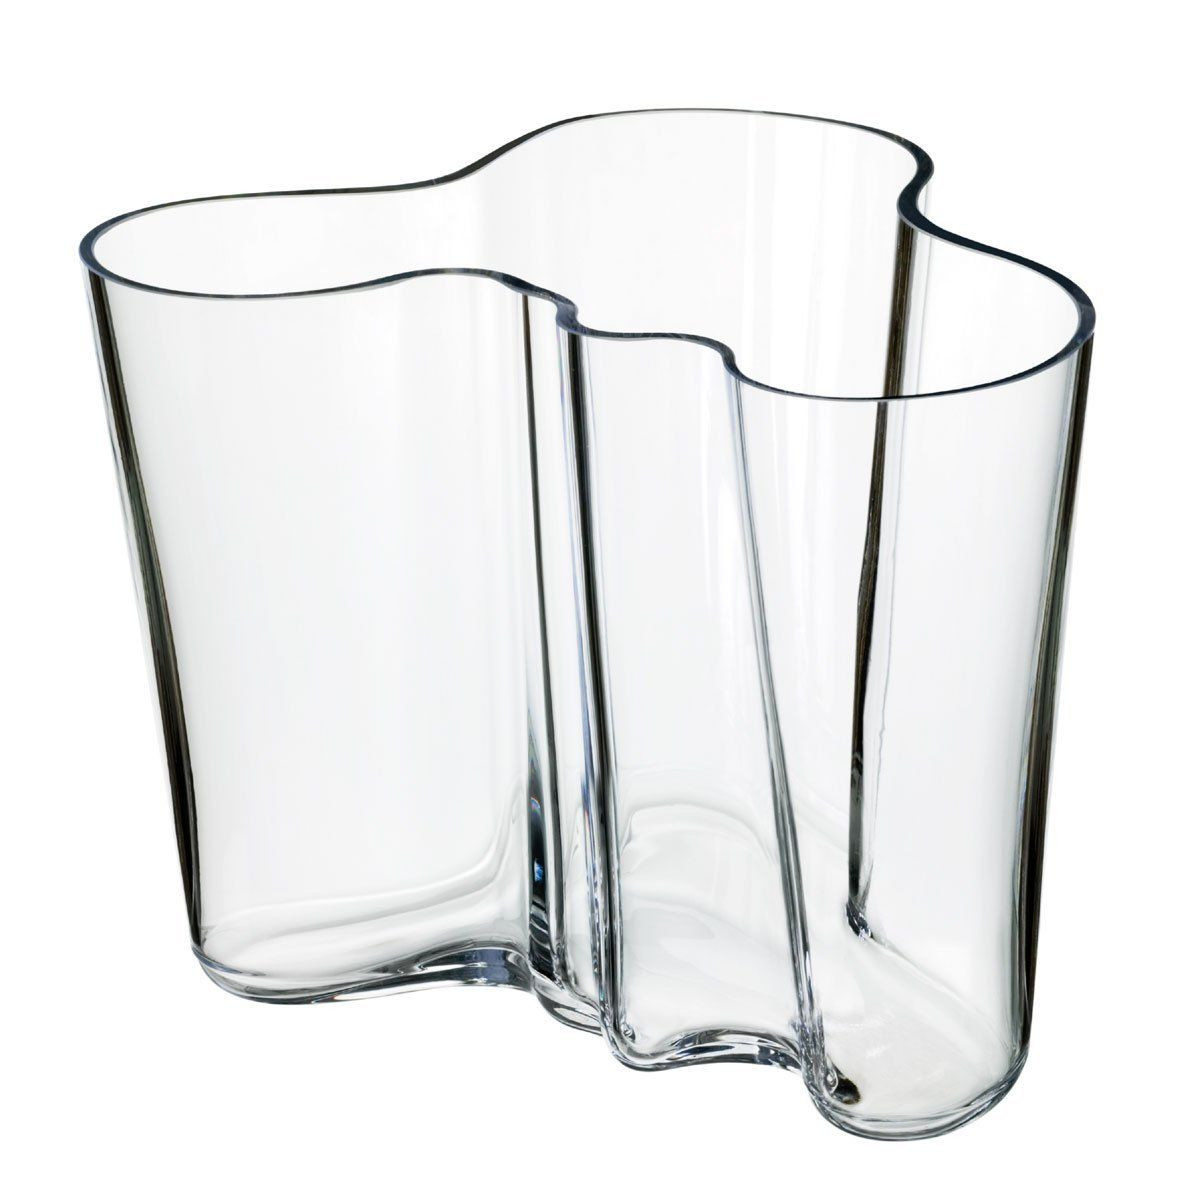 cheap glass cube vases of iittala aalto vase clear large read more reviews of the product inside explore glass vase product design and more